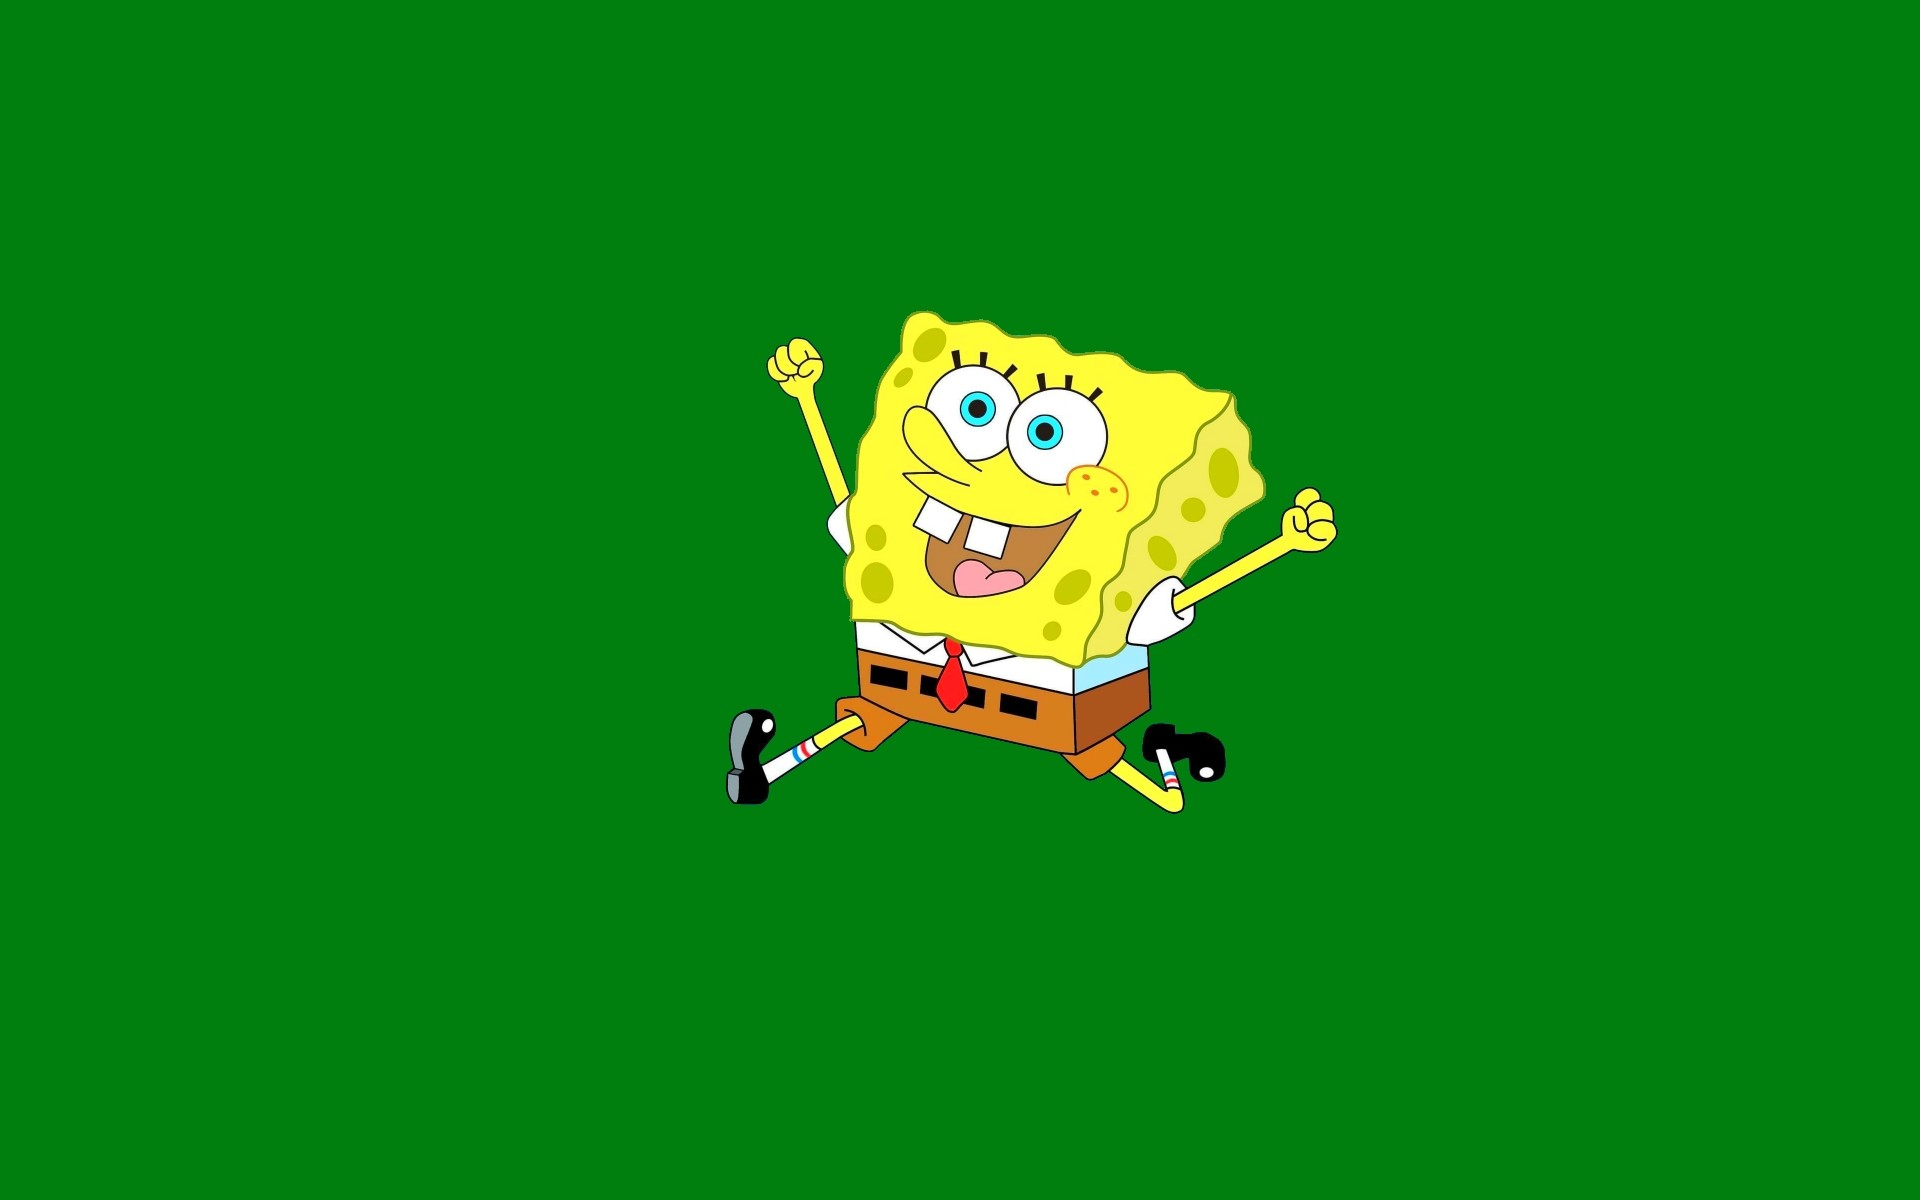 1920x1200 Simple SpongeBob HD background: